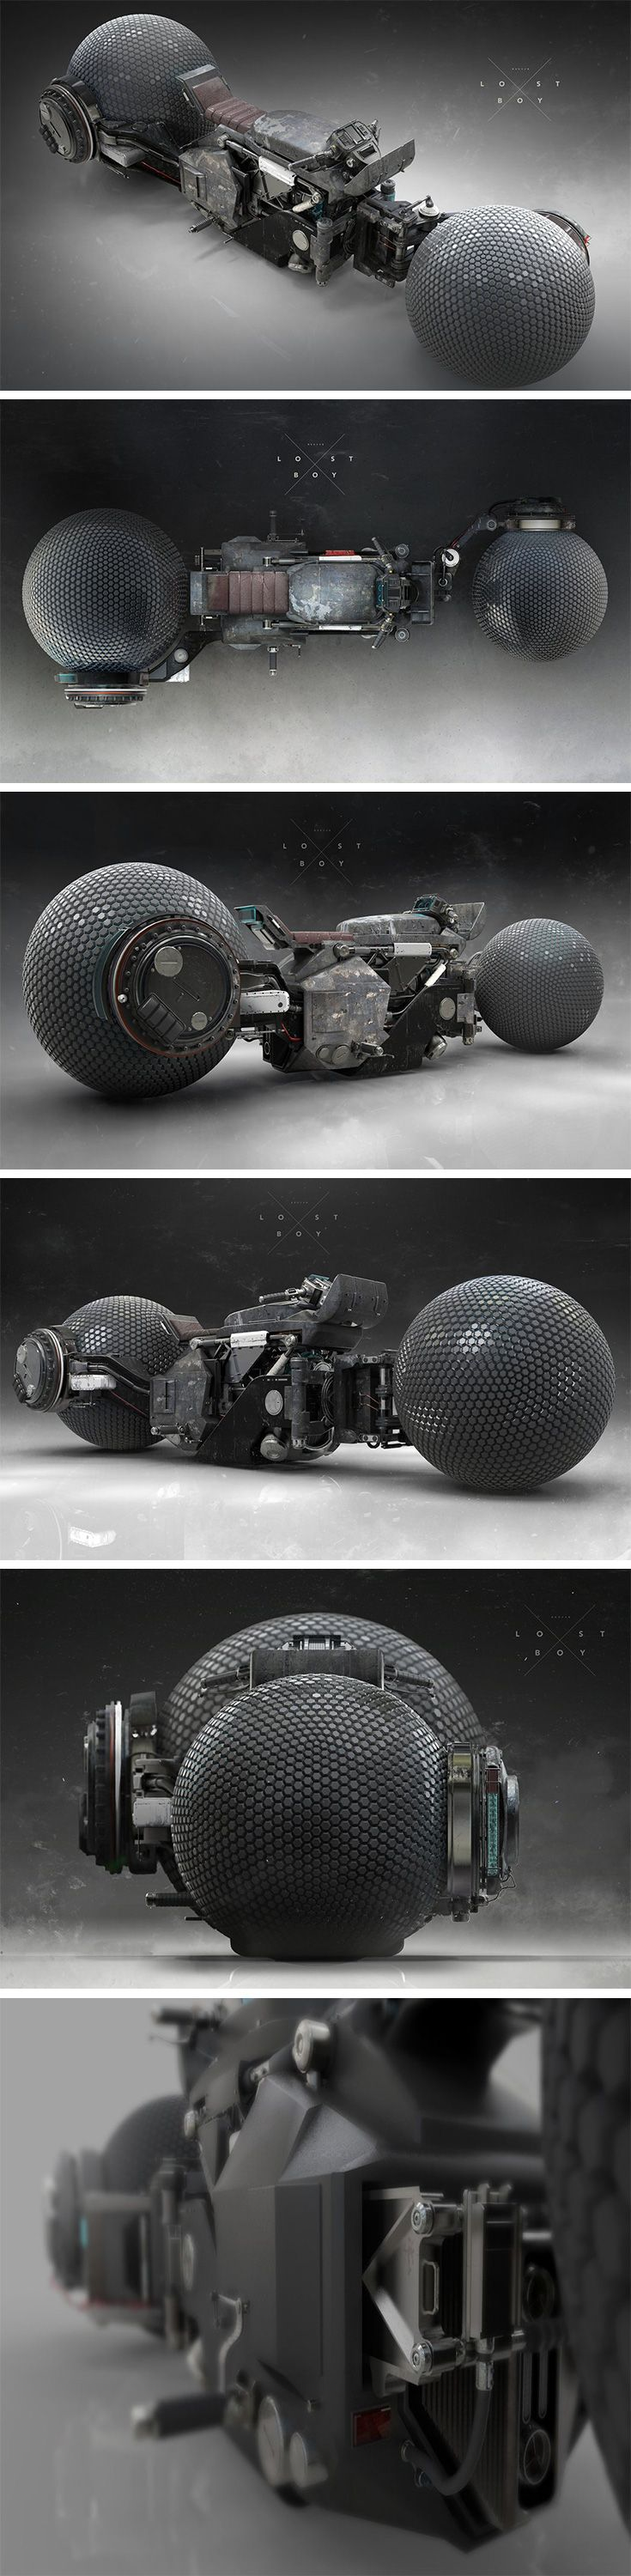 As featured in the sci-fi film LOSTBOY, this mean-looking motorcycle concept by designer Patrick A Razo is part steampunk and part ultra-futurism!